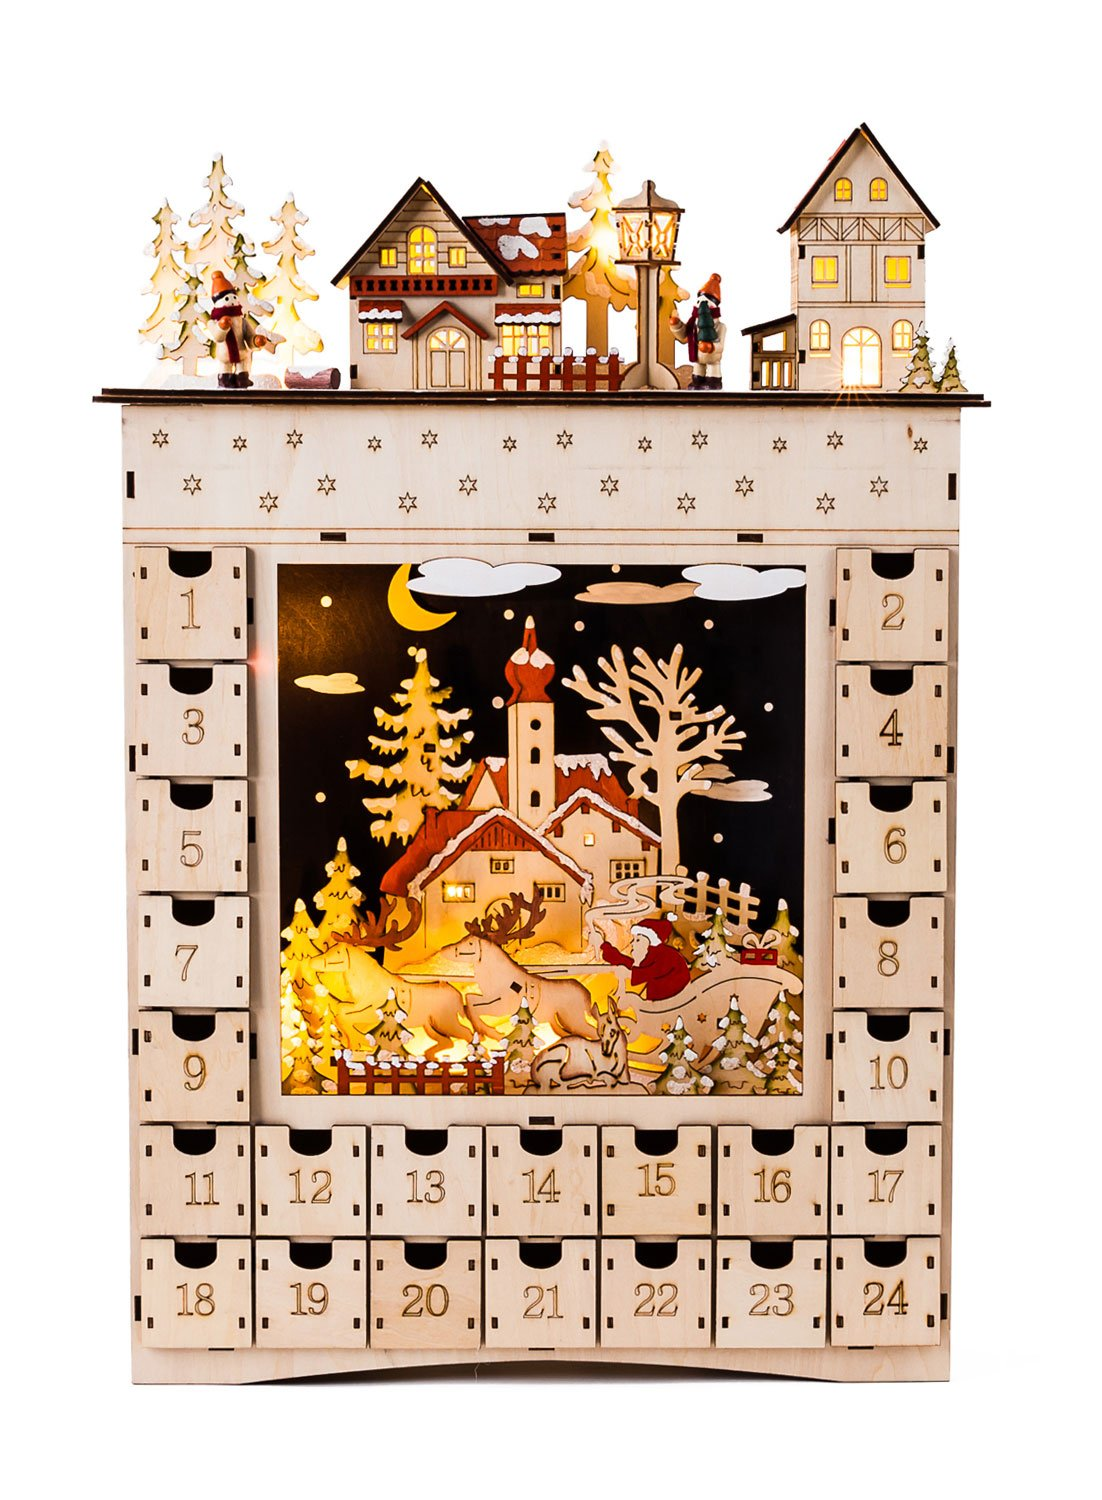 One Hundred 80 Degrees Bavarian Scene Lighted Advent Calendar by One Hundred 80 Degrees